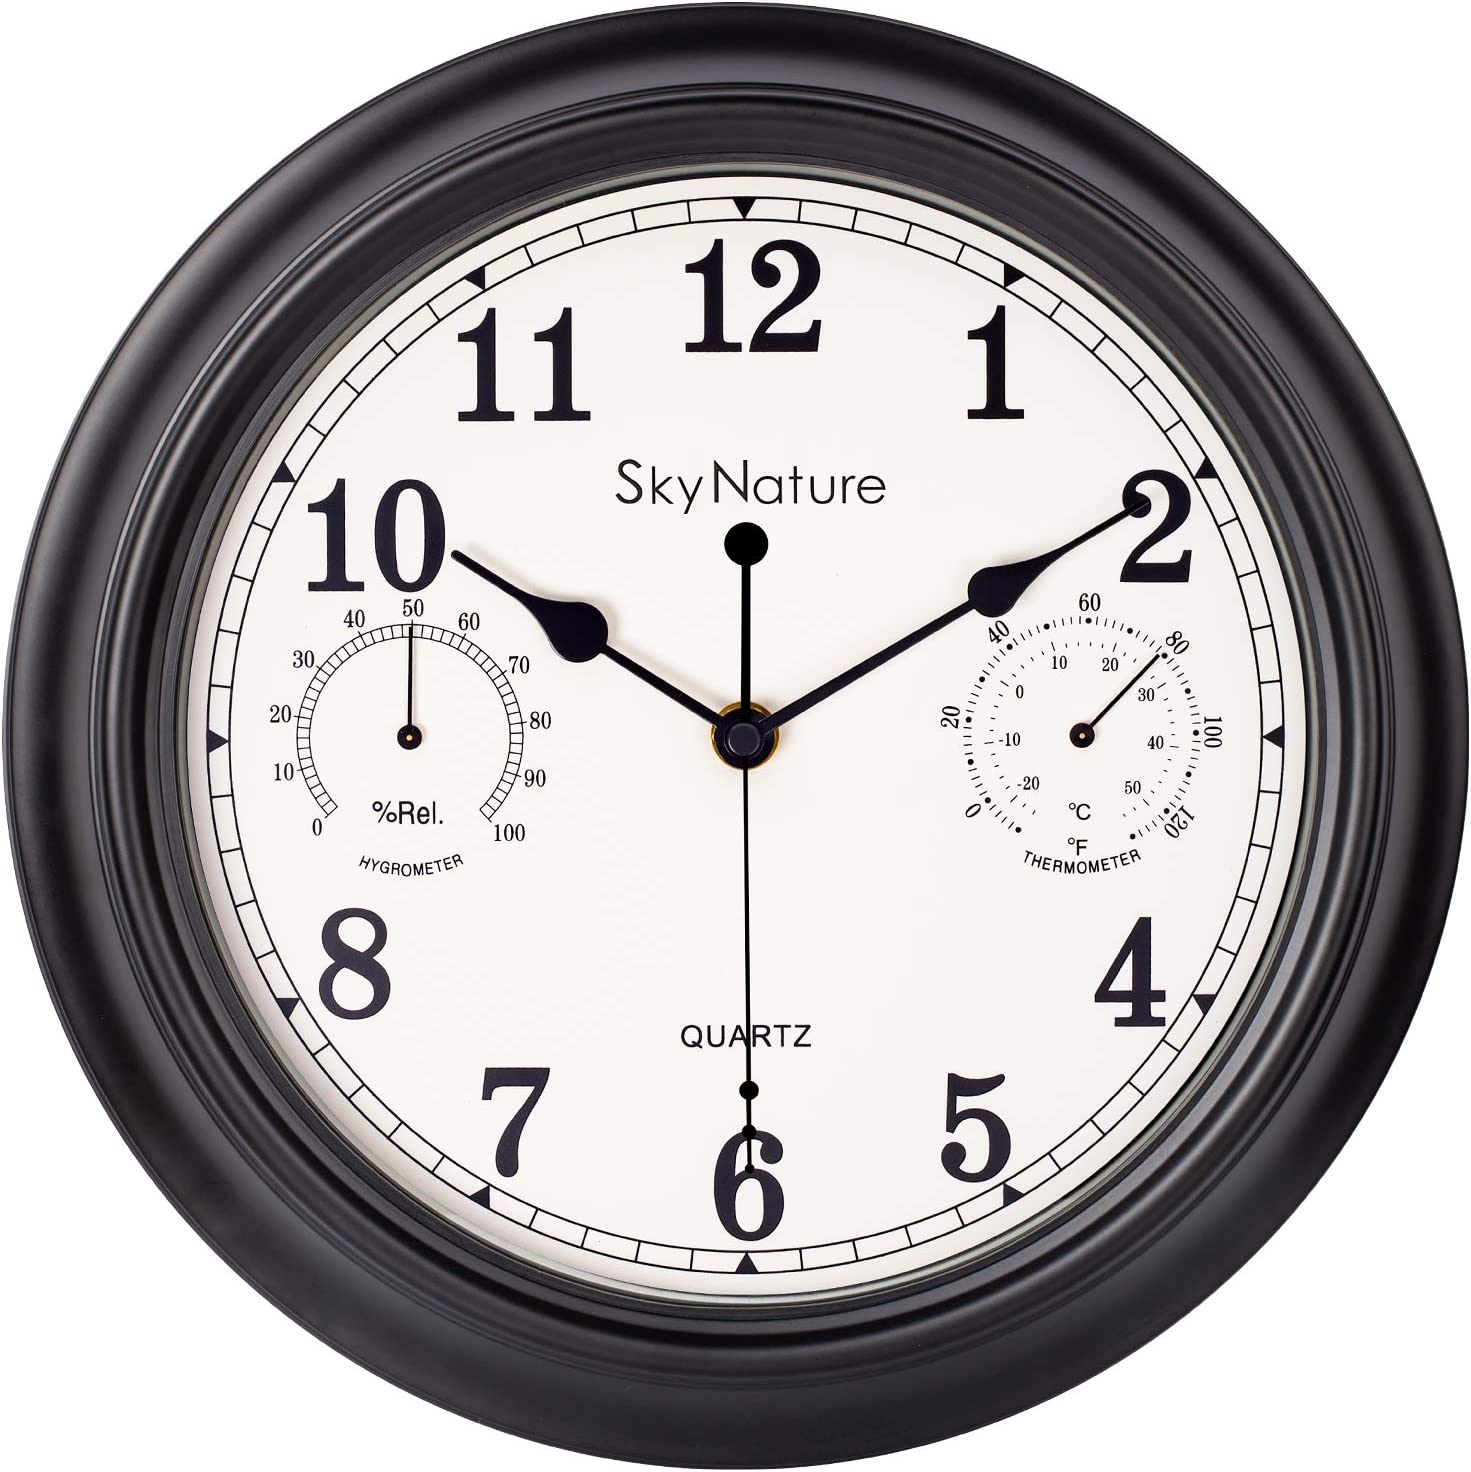 Vintage Wall Clock, 12 Inch Indoor/Outdoor Metal Clock with Thermometer & Hygrometer Combo, Silent Non-Ticking Battery Operated Decor Clock for Home, Living Room, Kitchen, Garden. Matt Black